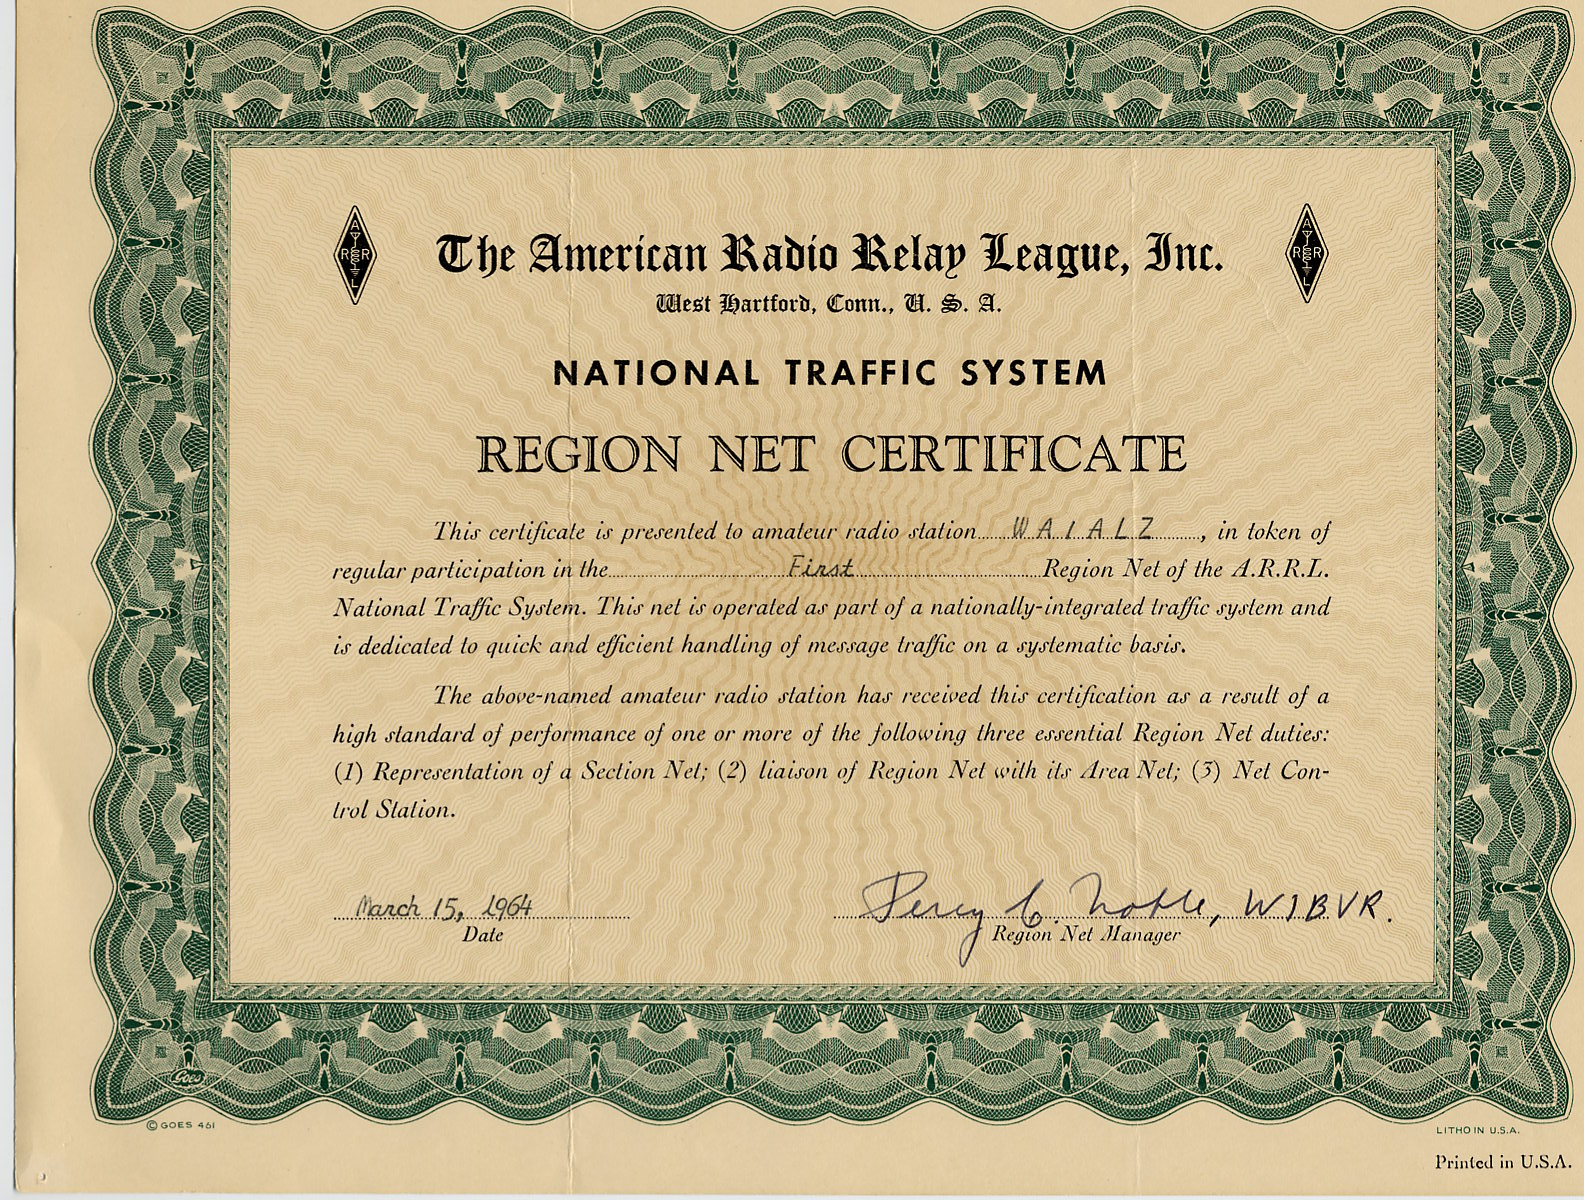 W1tr radio awards certificates 1964 arrl nts region net certificate 1rn cw wa1alz xflitez Image collections